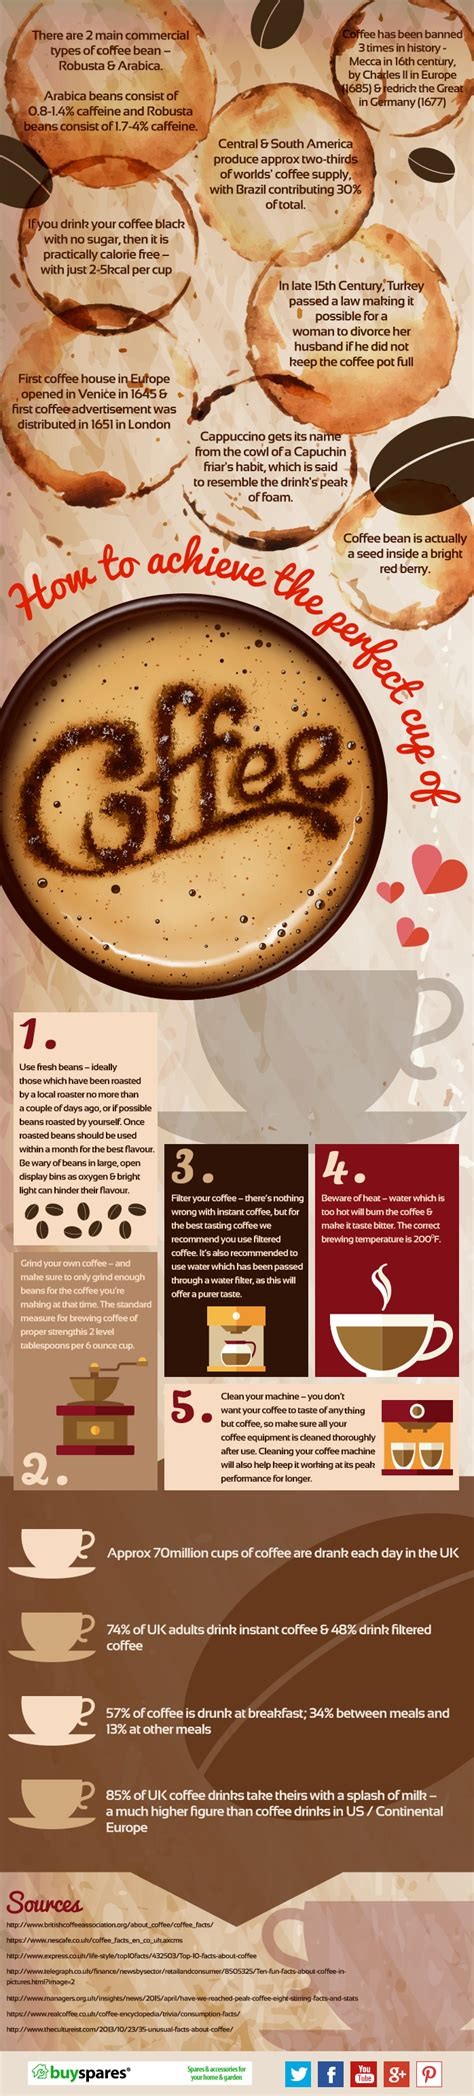 Kate beckinsale makes the perfect cup of english tea. How To Achieve The Perfect Cup of Coffee Infographic | Everything Homes